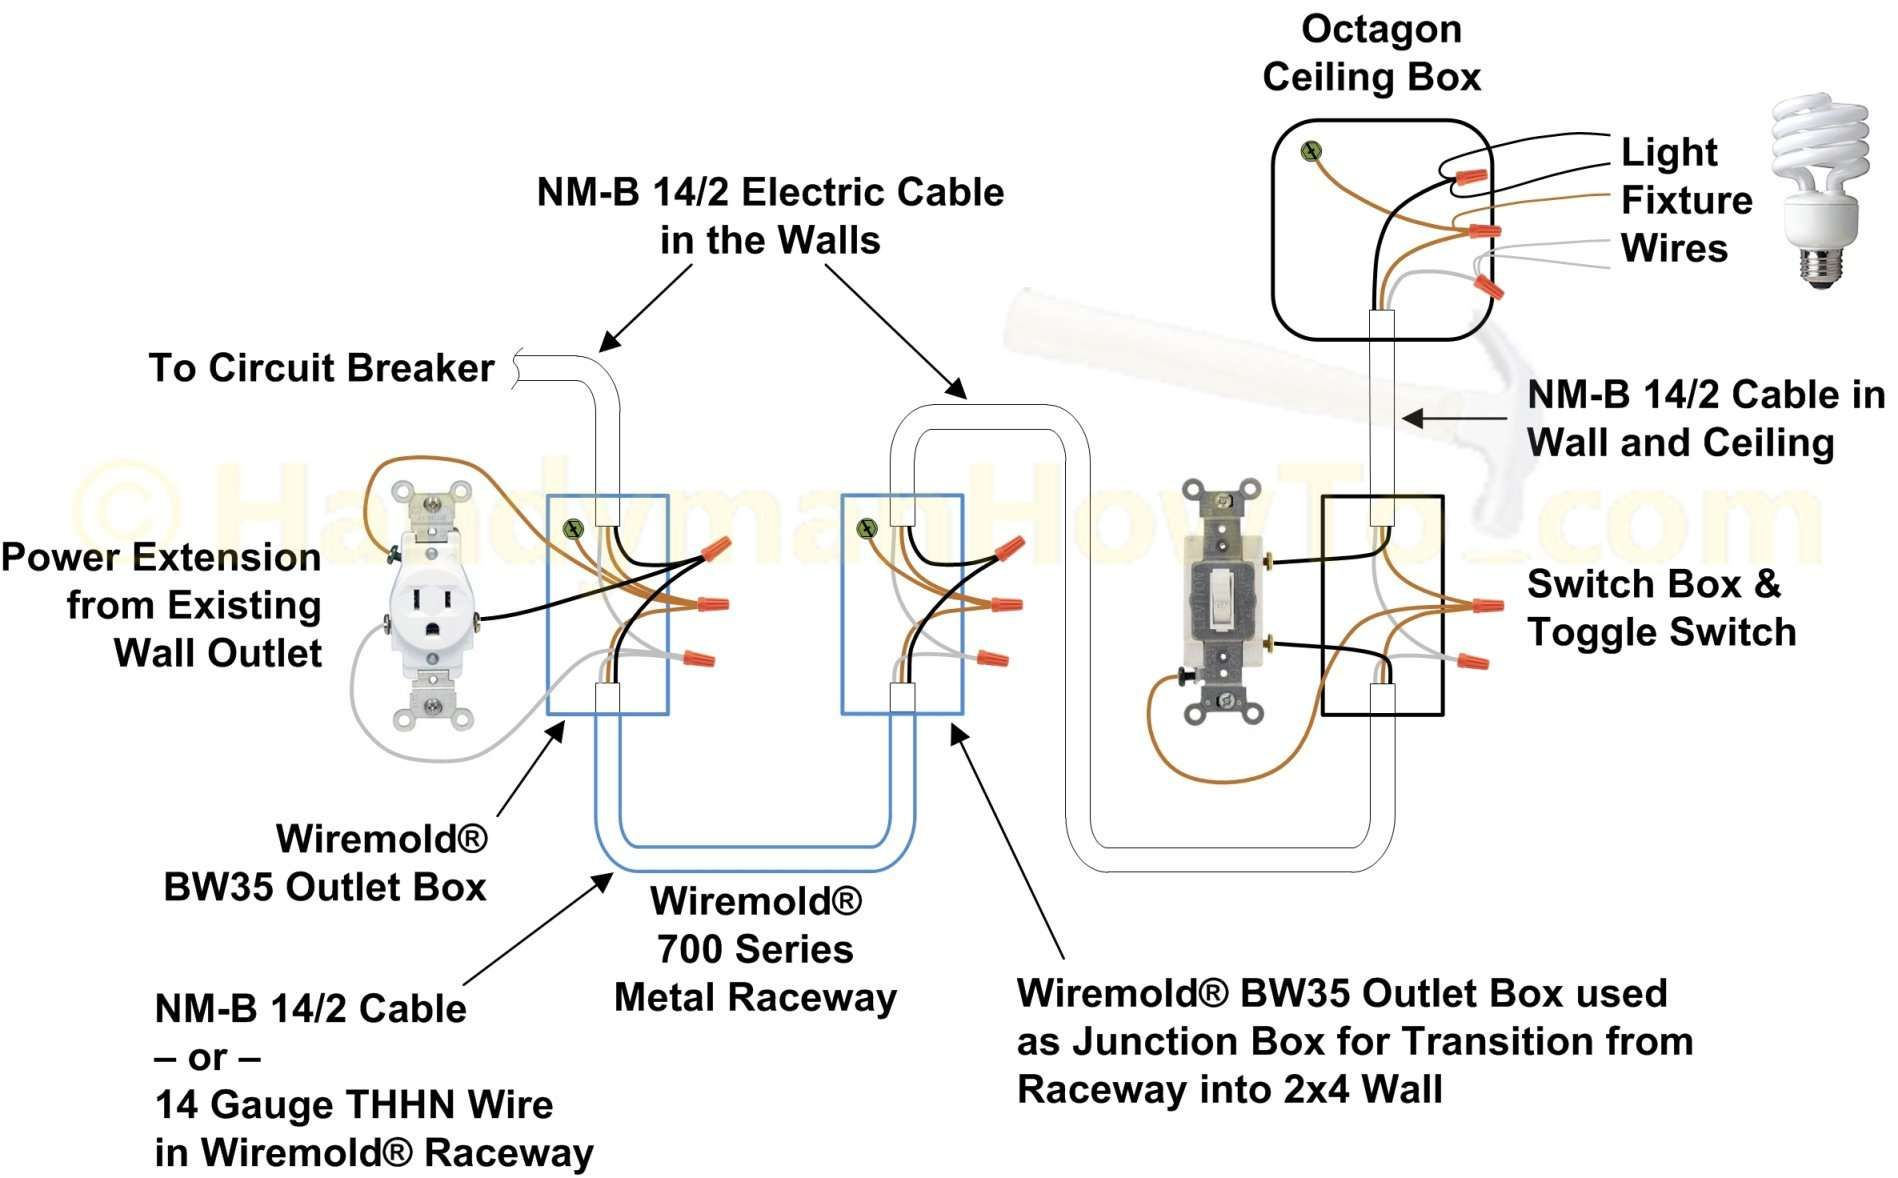 wiring diagram outlets beautiful wiring diagram outlets splendid line wiring diagram help signalsbrake light code for [ 1898 x 1178 Pixel ]